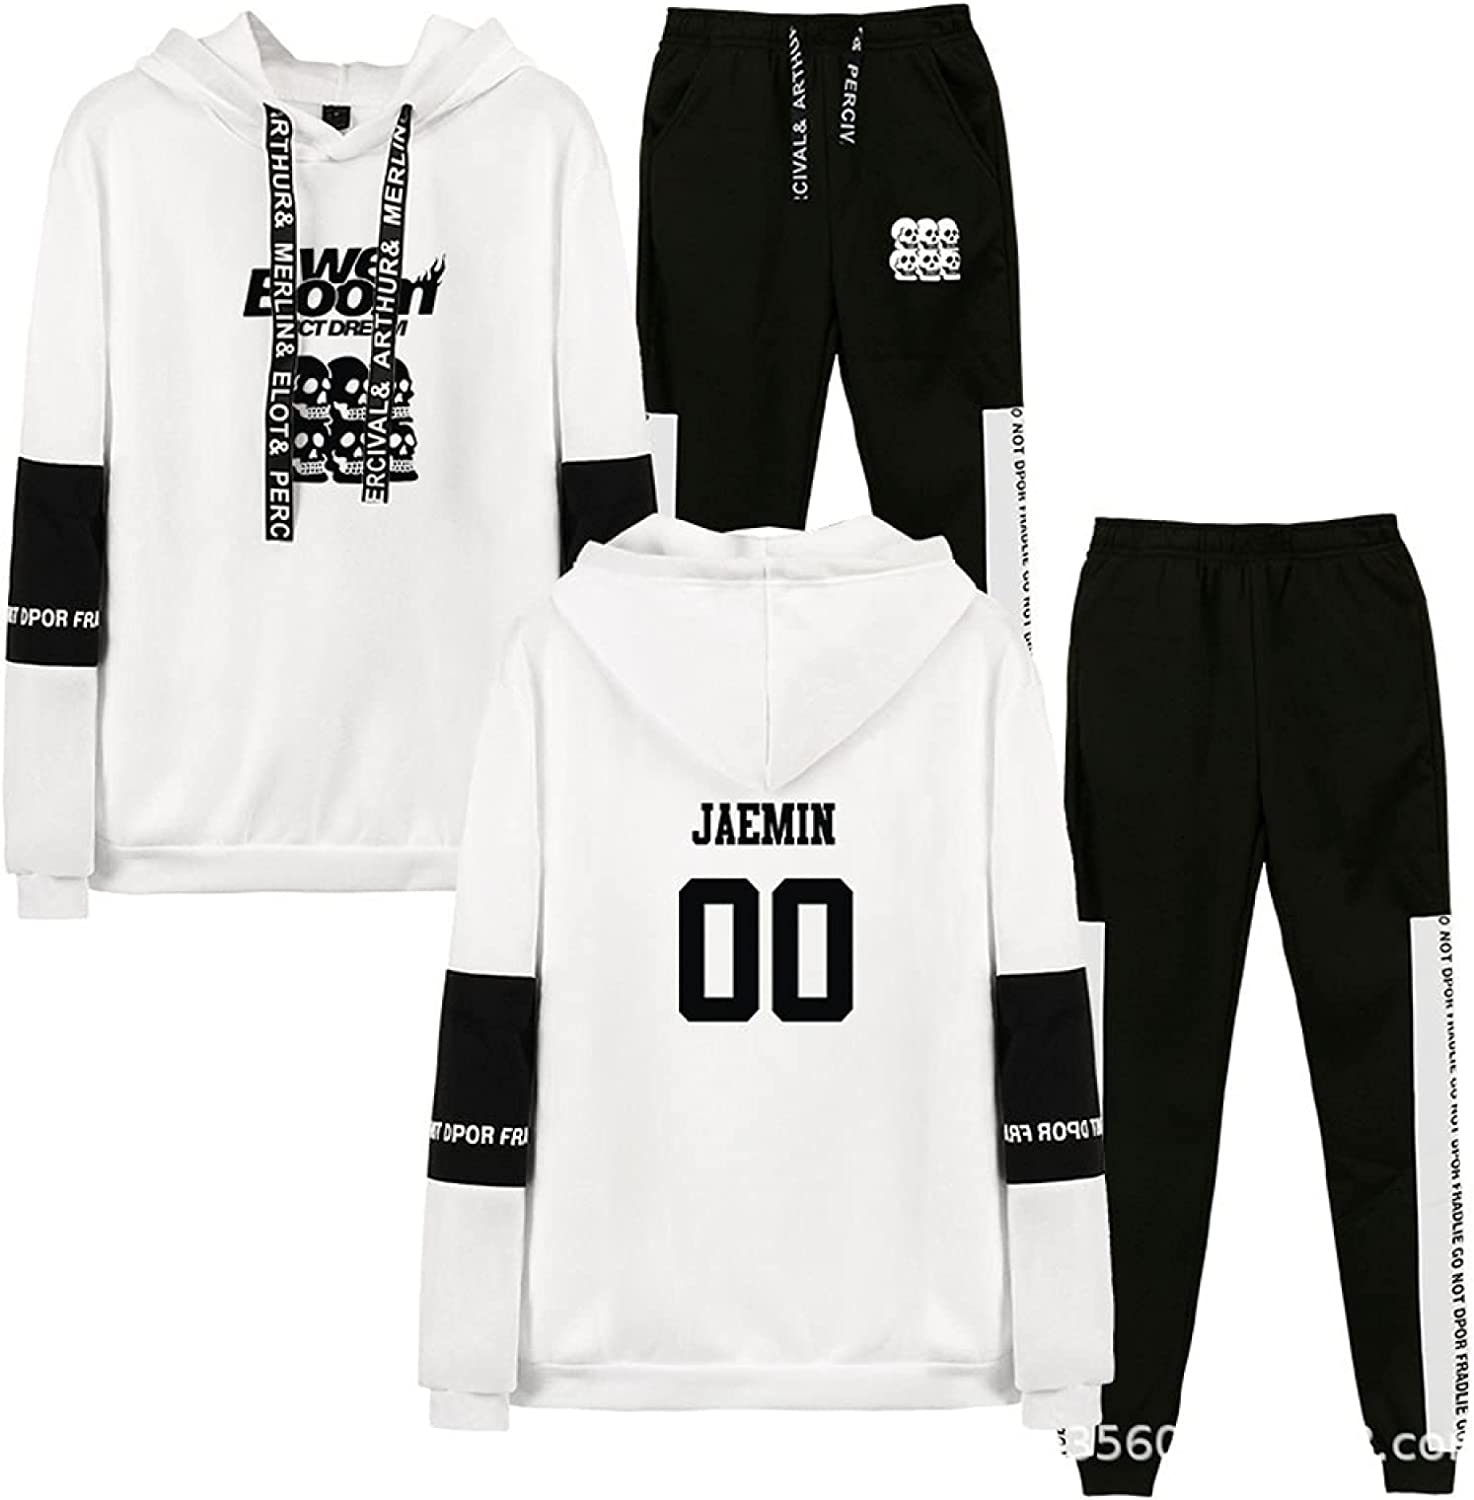 NCT DREAM Merchandise We Boom Members Popular popular High material All Sportswear Suit White